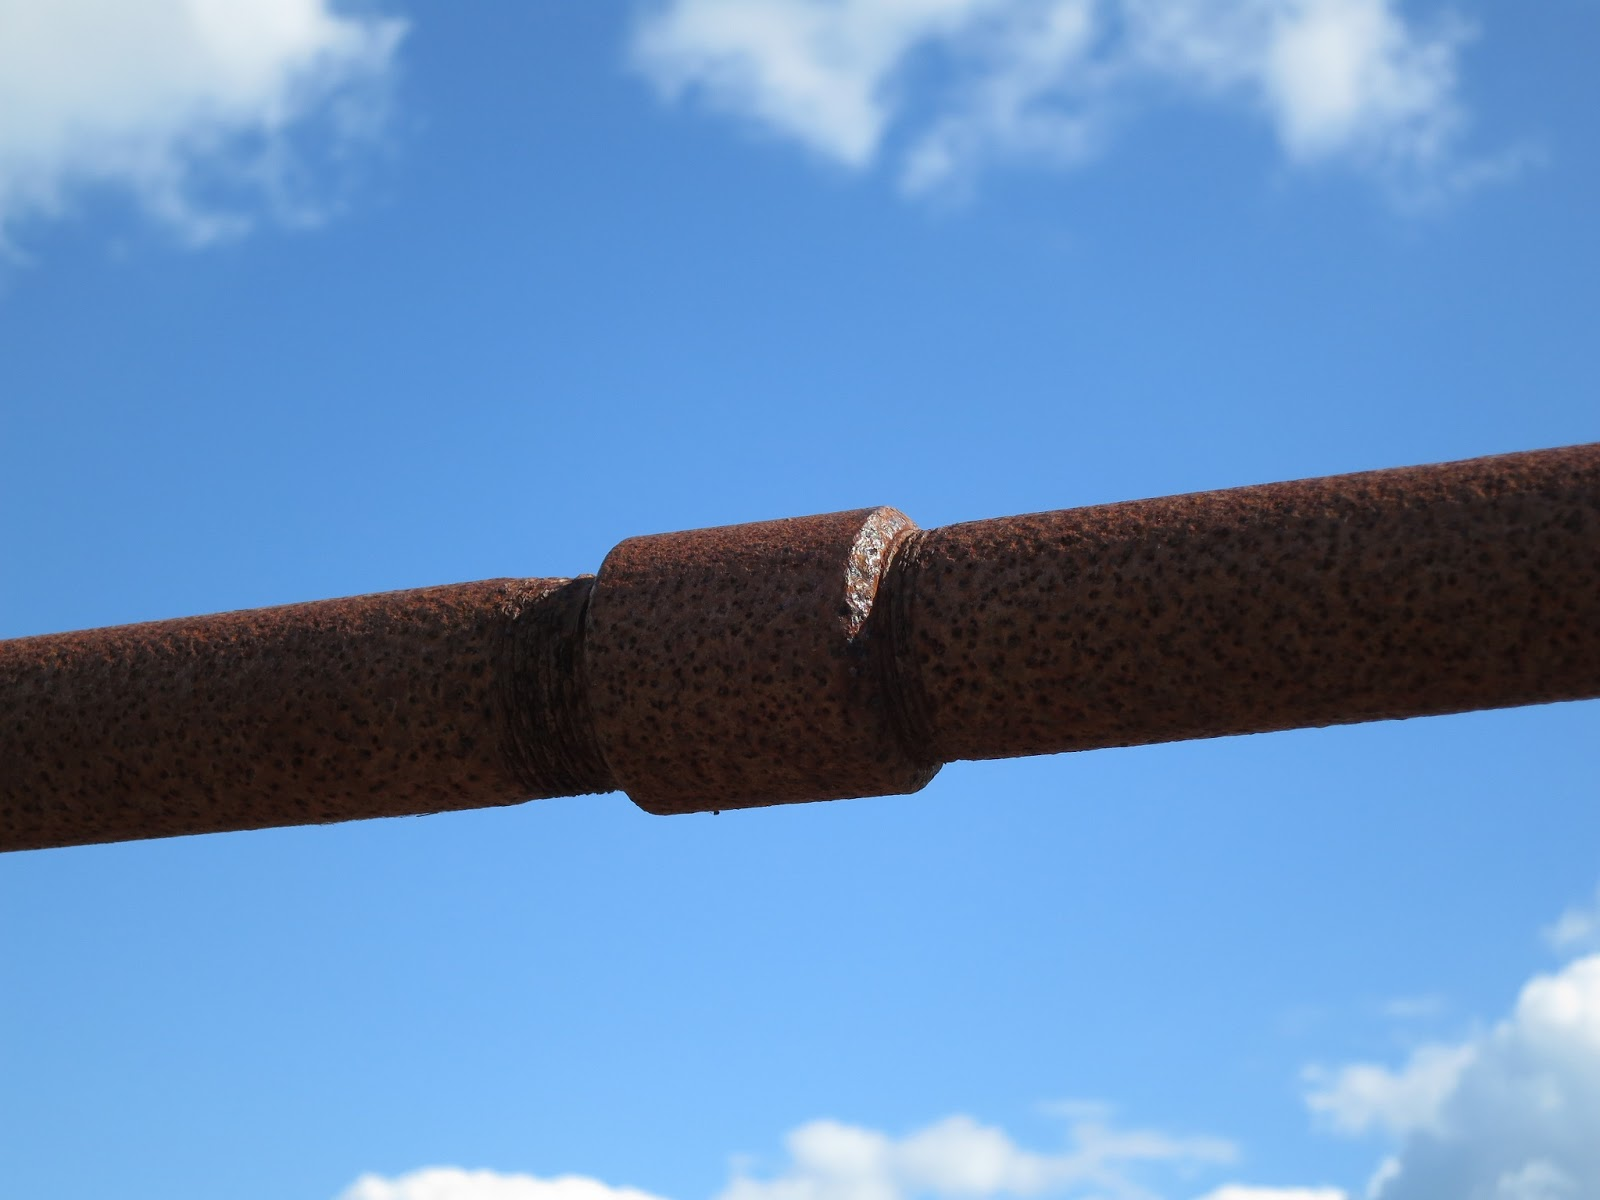 Rusty rail of bridge against blue sky with puffy white clouds.